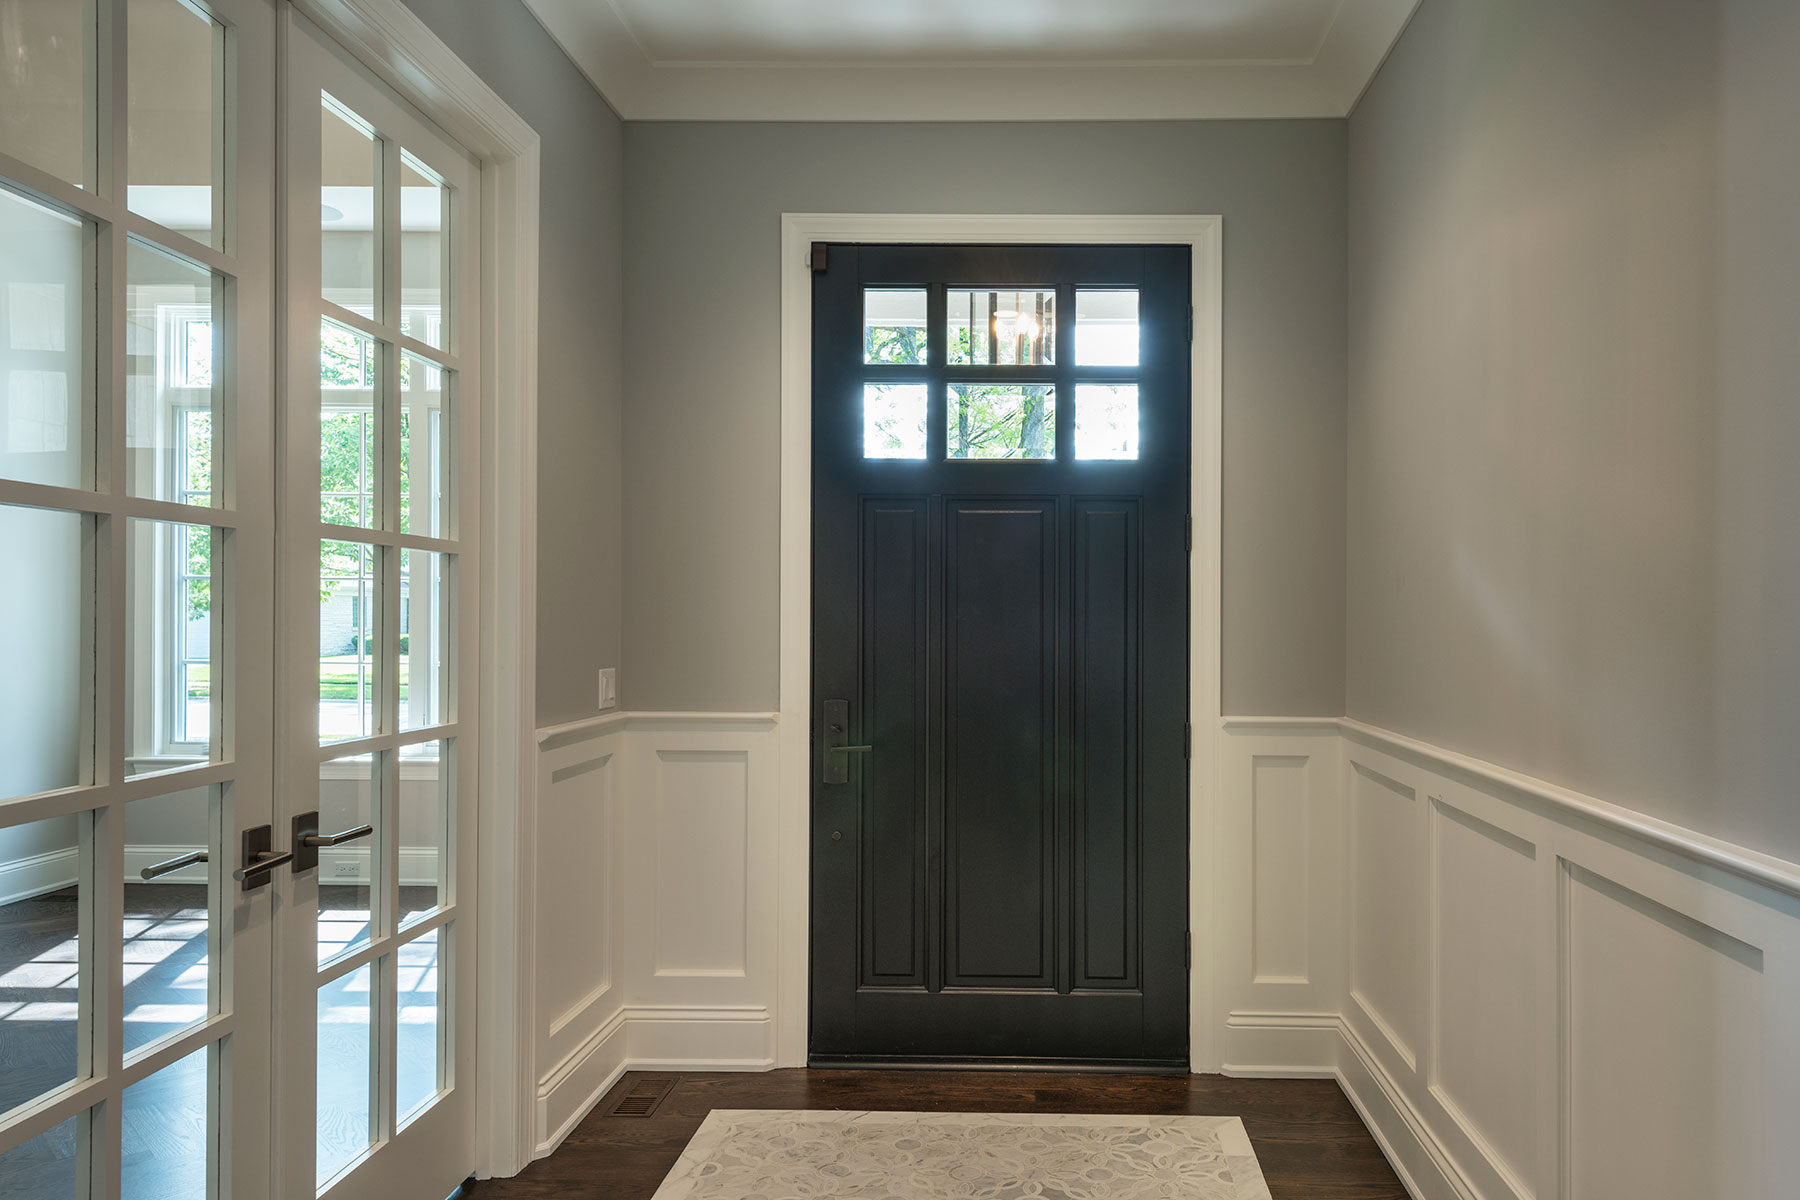 Wood Front Entry Doors in-Stock | classic style front entry door, interior view, dark finish DB-311PW 2SL - Glenview Doors - Custom Doors in Chicago